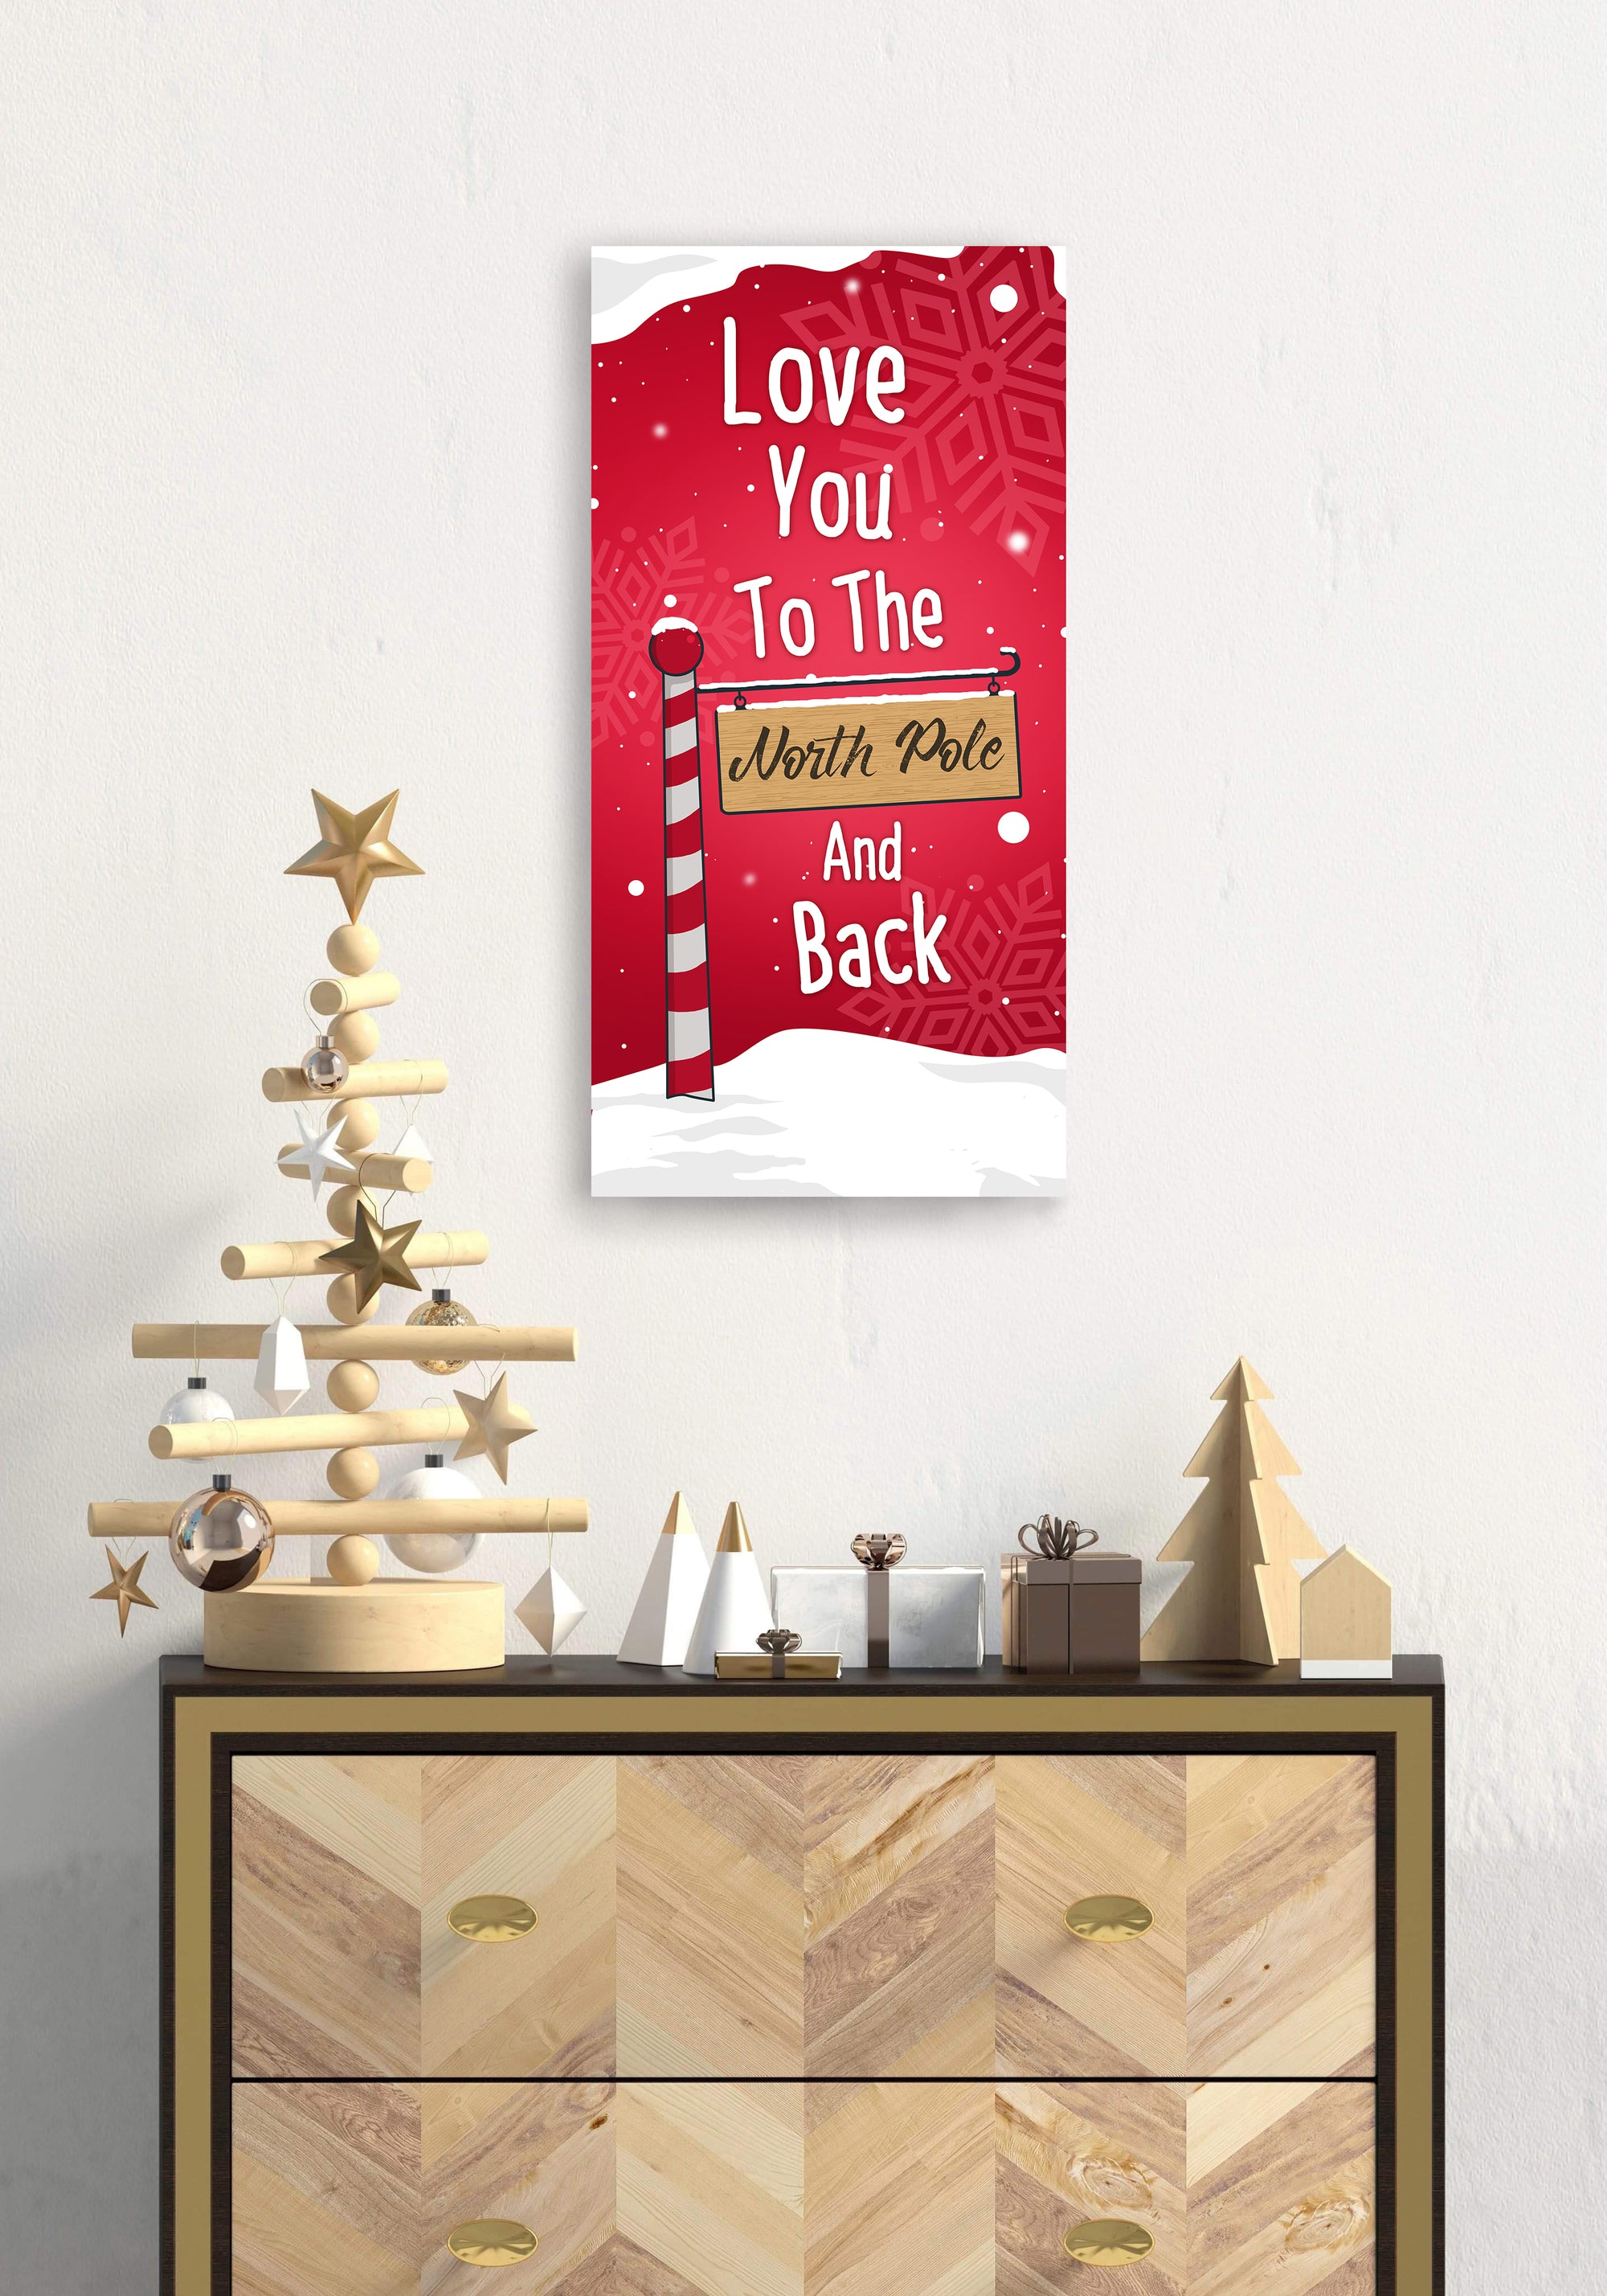 Holiday Decor Wall Art: Love You To The North Pole (Wood Frame Ready To Hang)